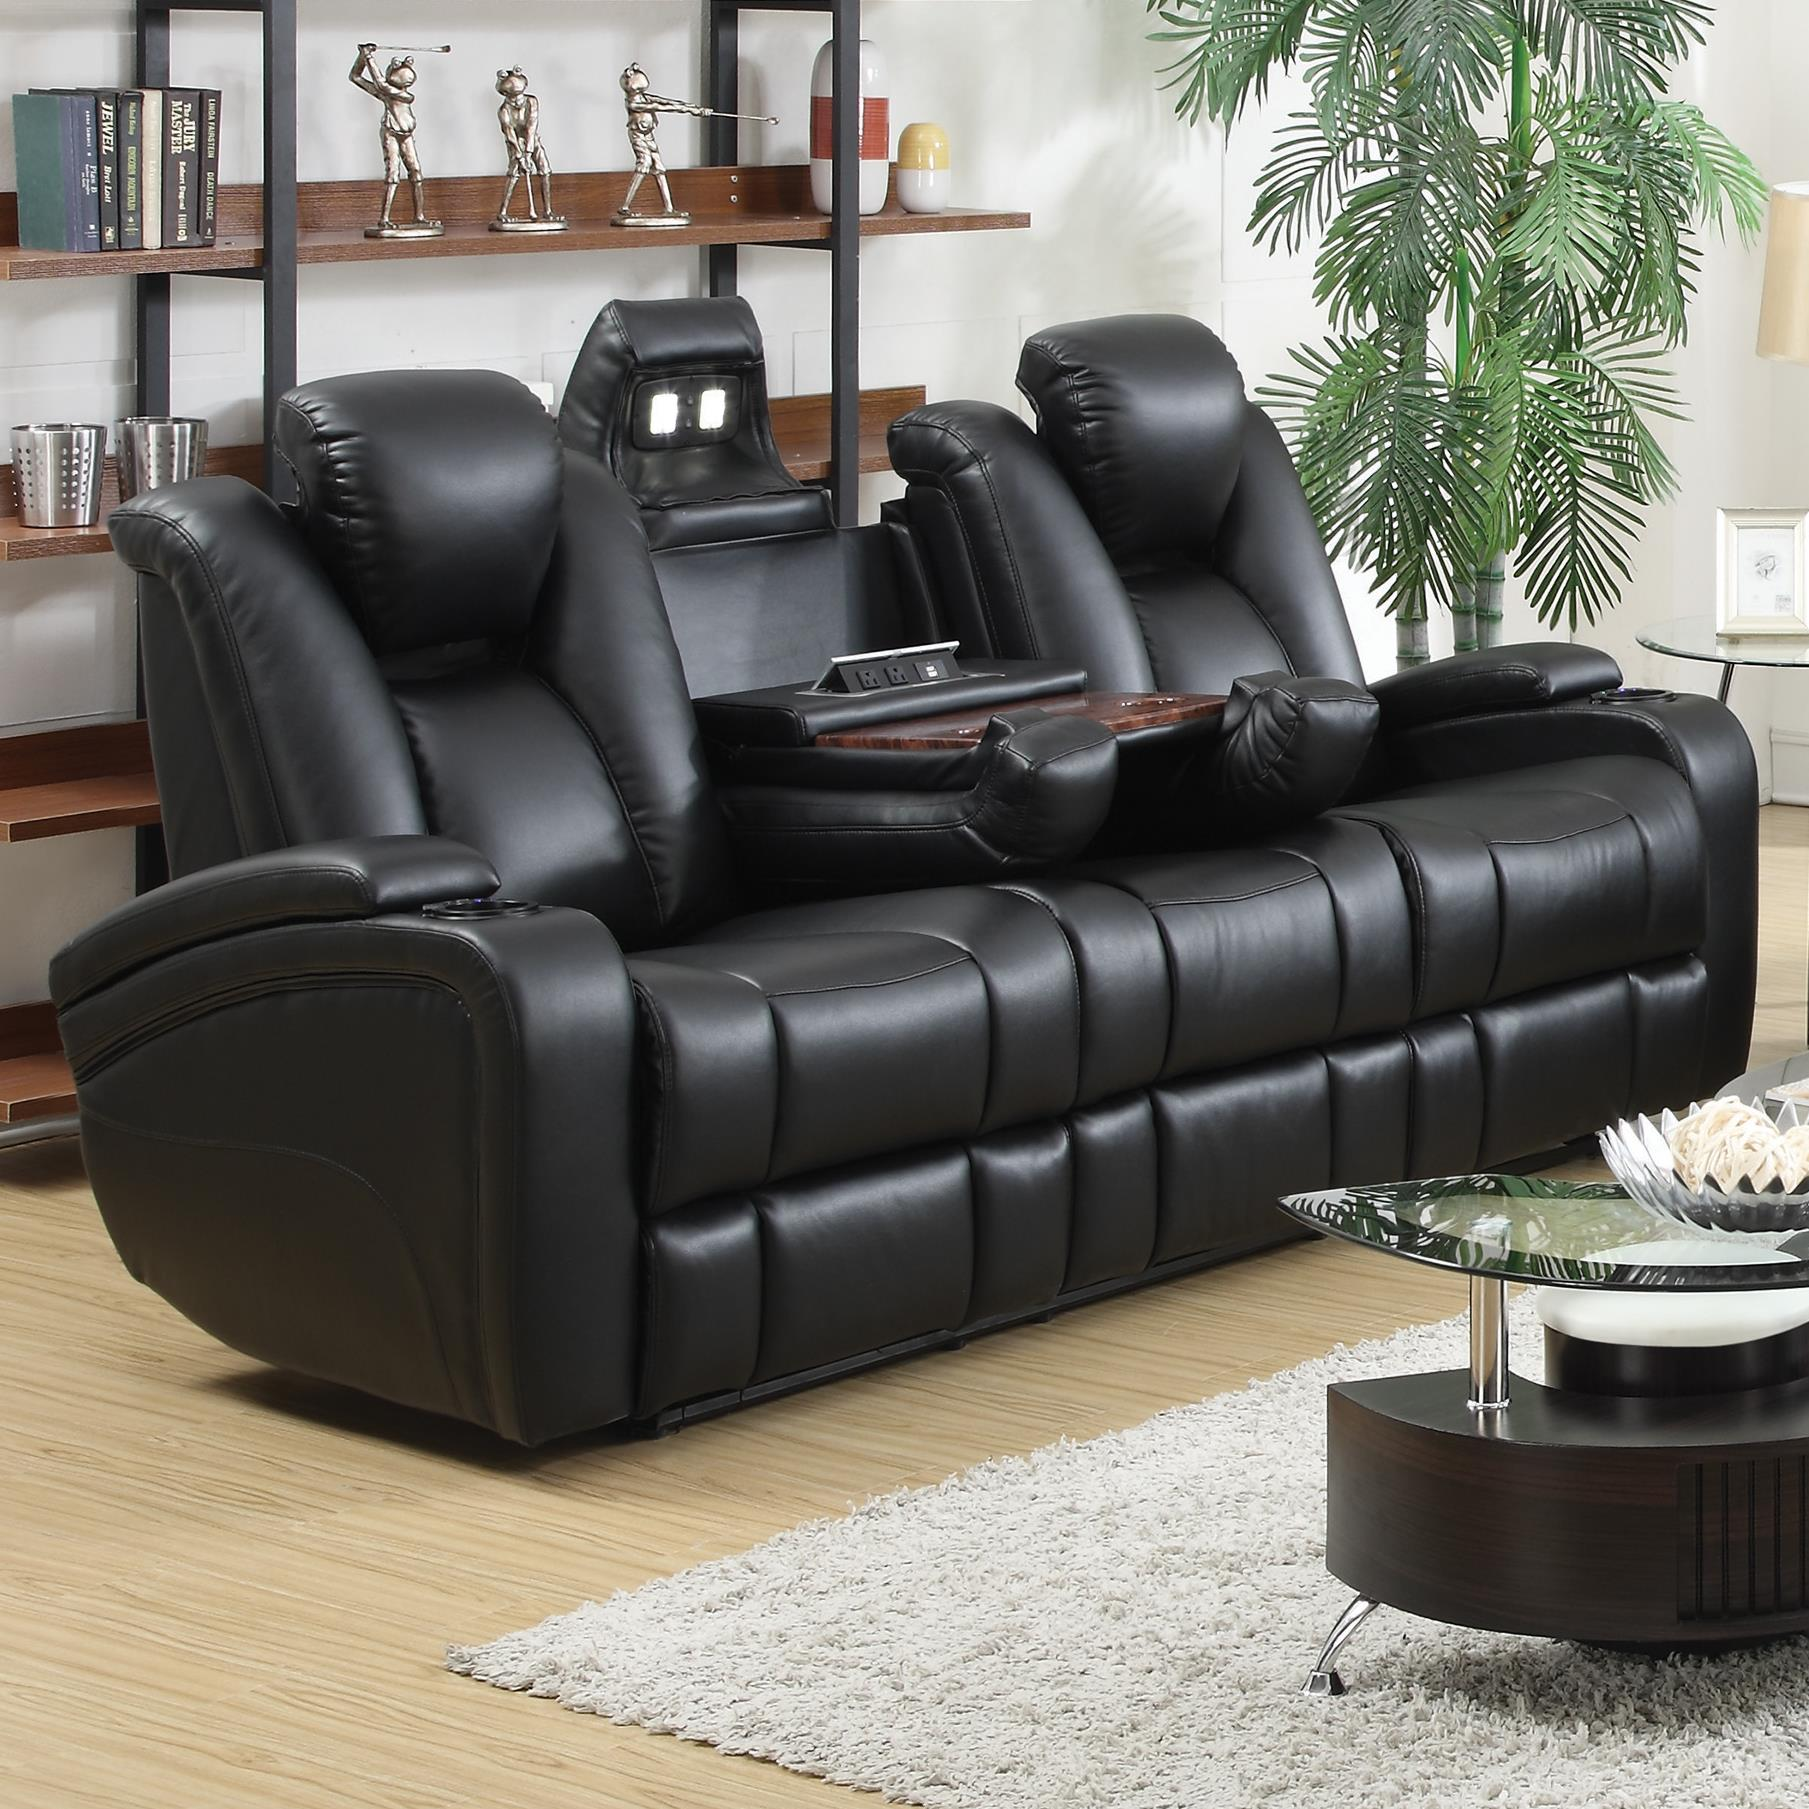 Delange leather power reclining sofa theater seats with power delange leather power reclining sofa theater seats parisarafo Gallery